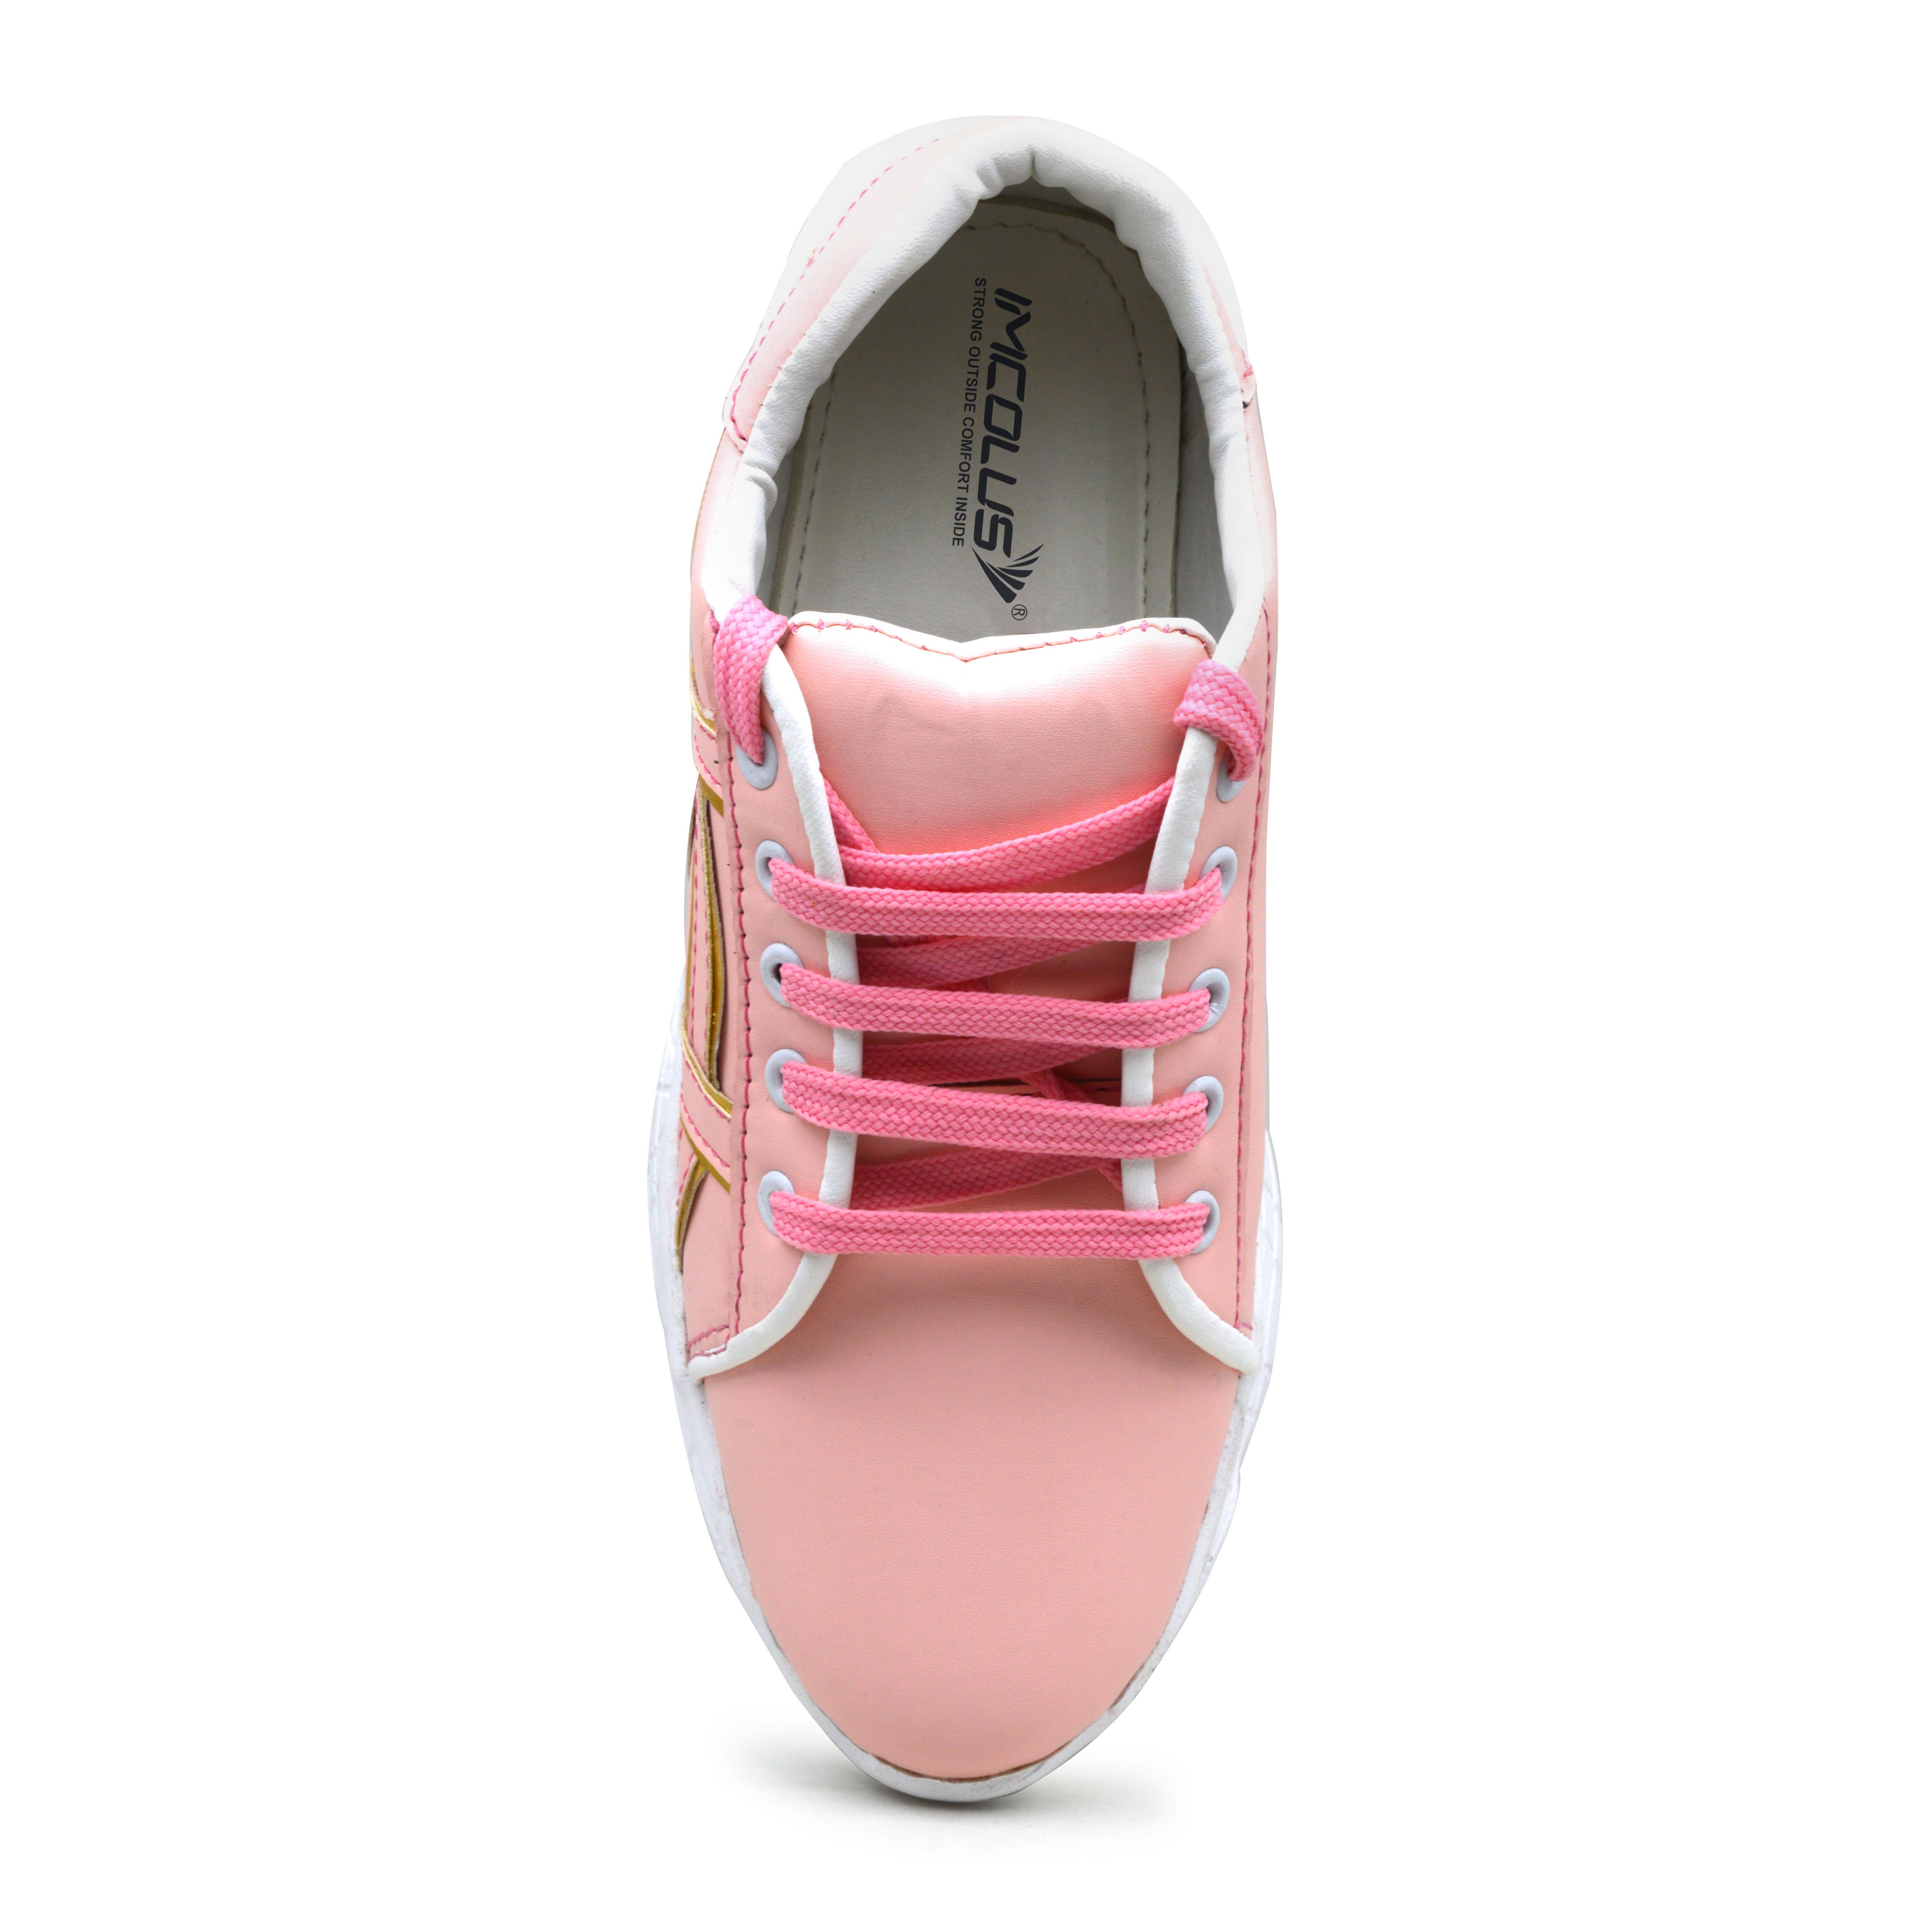 IMCOLUS437.737_PINK RUNNING & COMFORTABLE GIRL'S SPORT SHOES IMCOLUS437.737_PINK (PINK, 36TO41, PAIR'S)